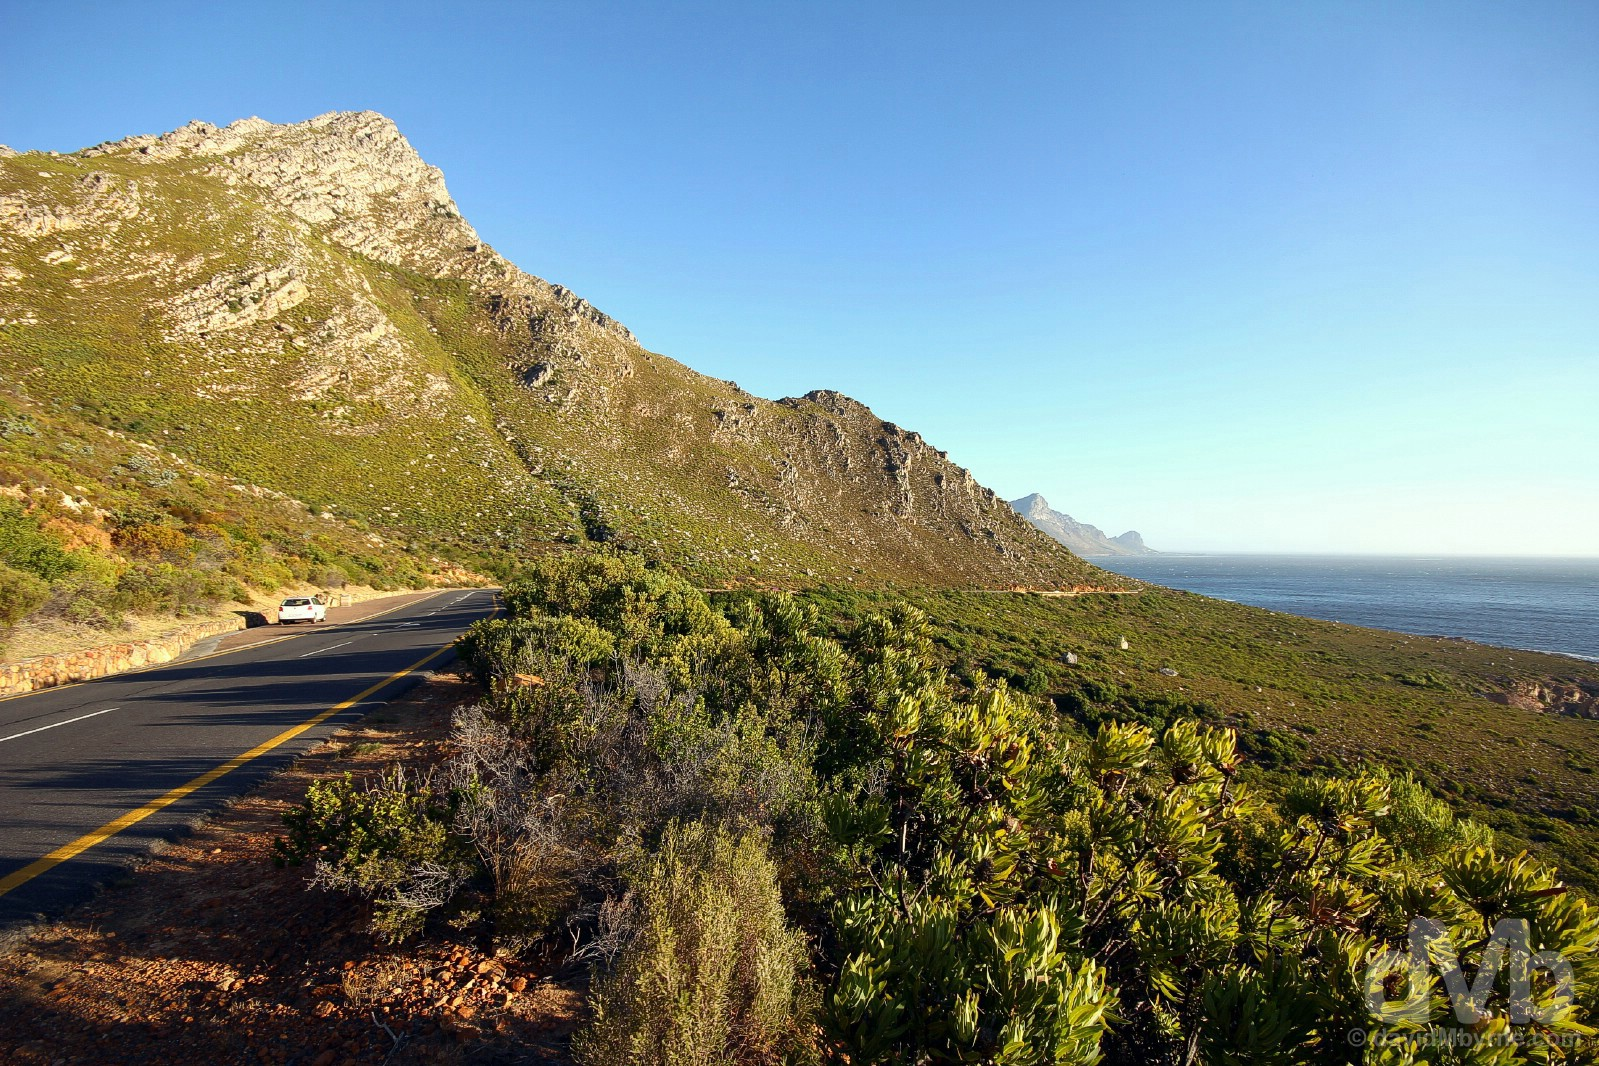 Road trip on Clarence Drive, the coastal-hugging R44 in eastern False Bay, Western Cape, South Africa. February 20, 2017.